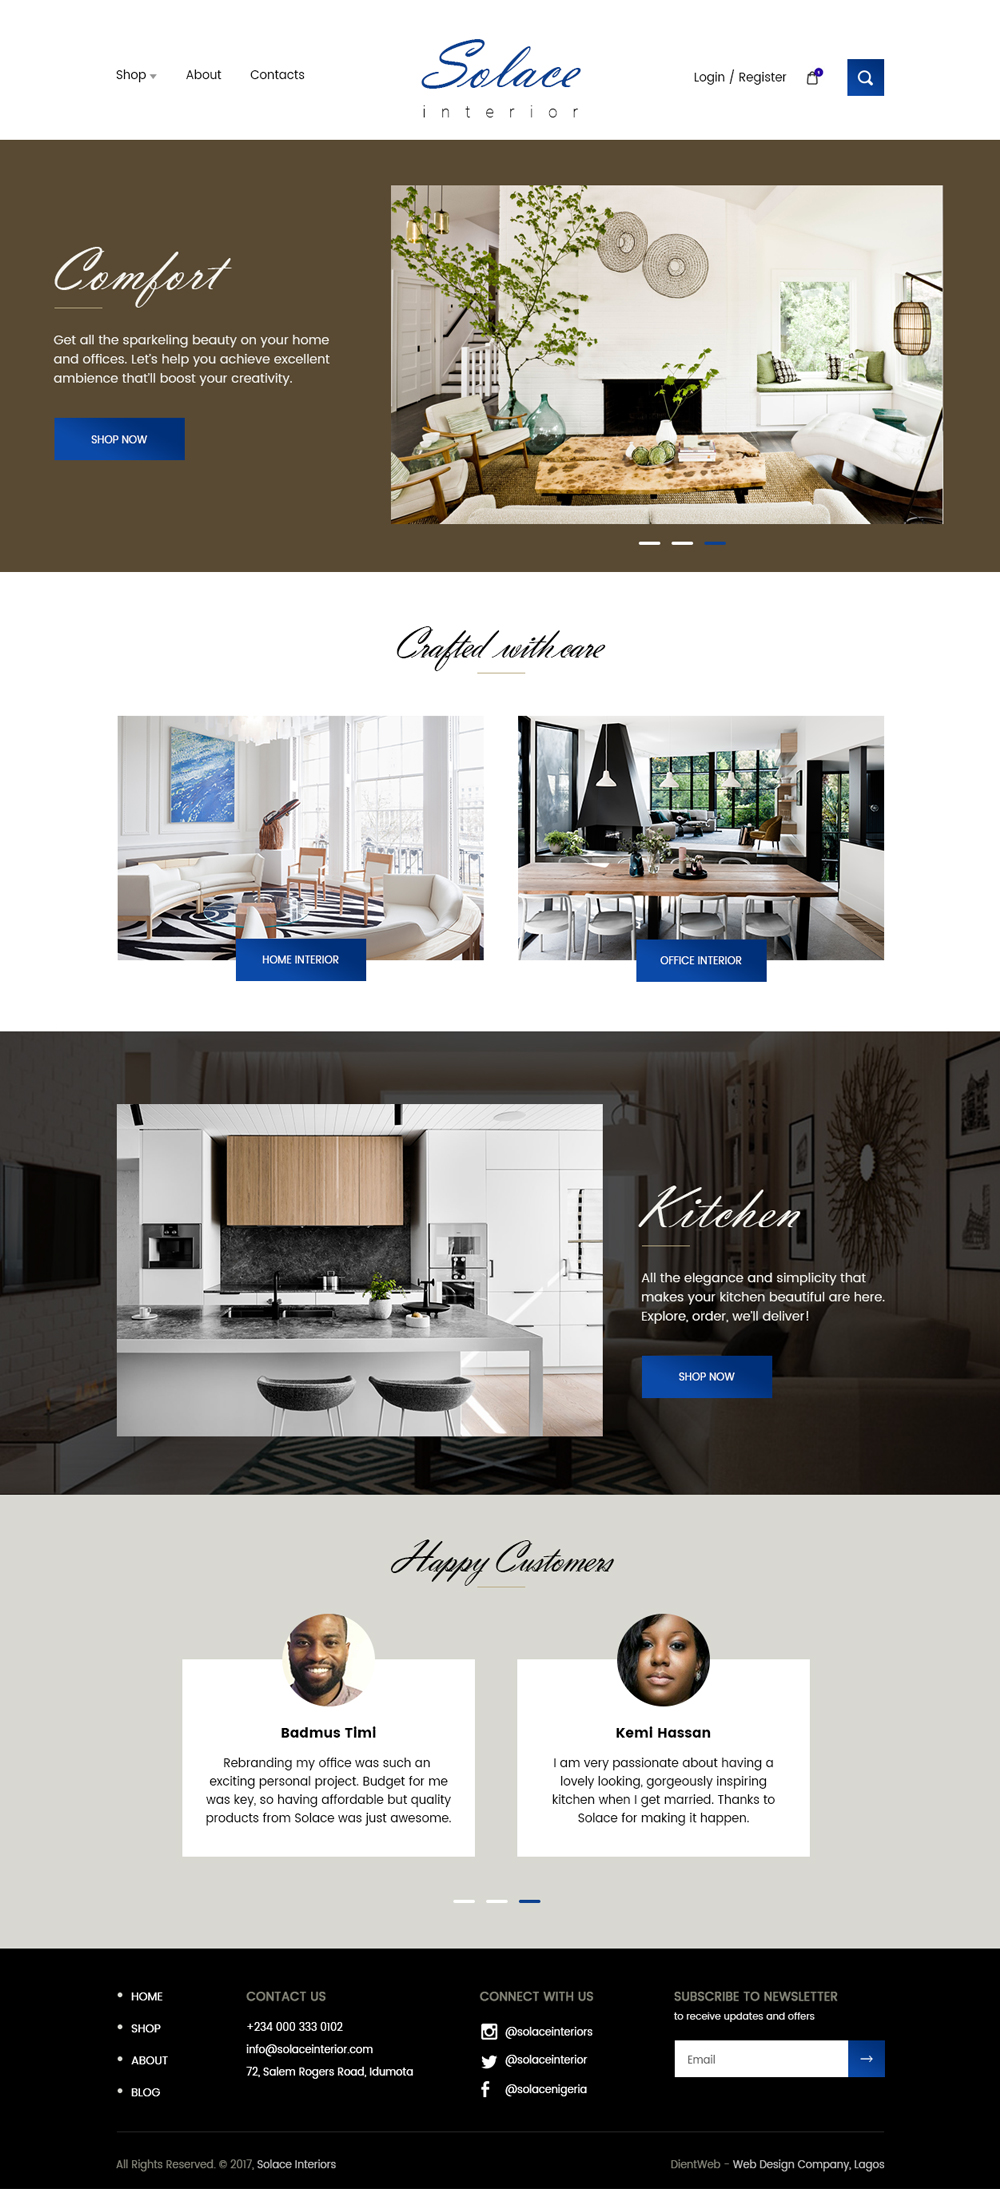 Solace ecommerce website design by DientWeb home page design